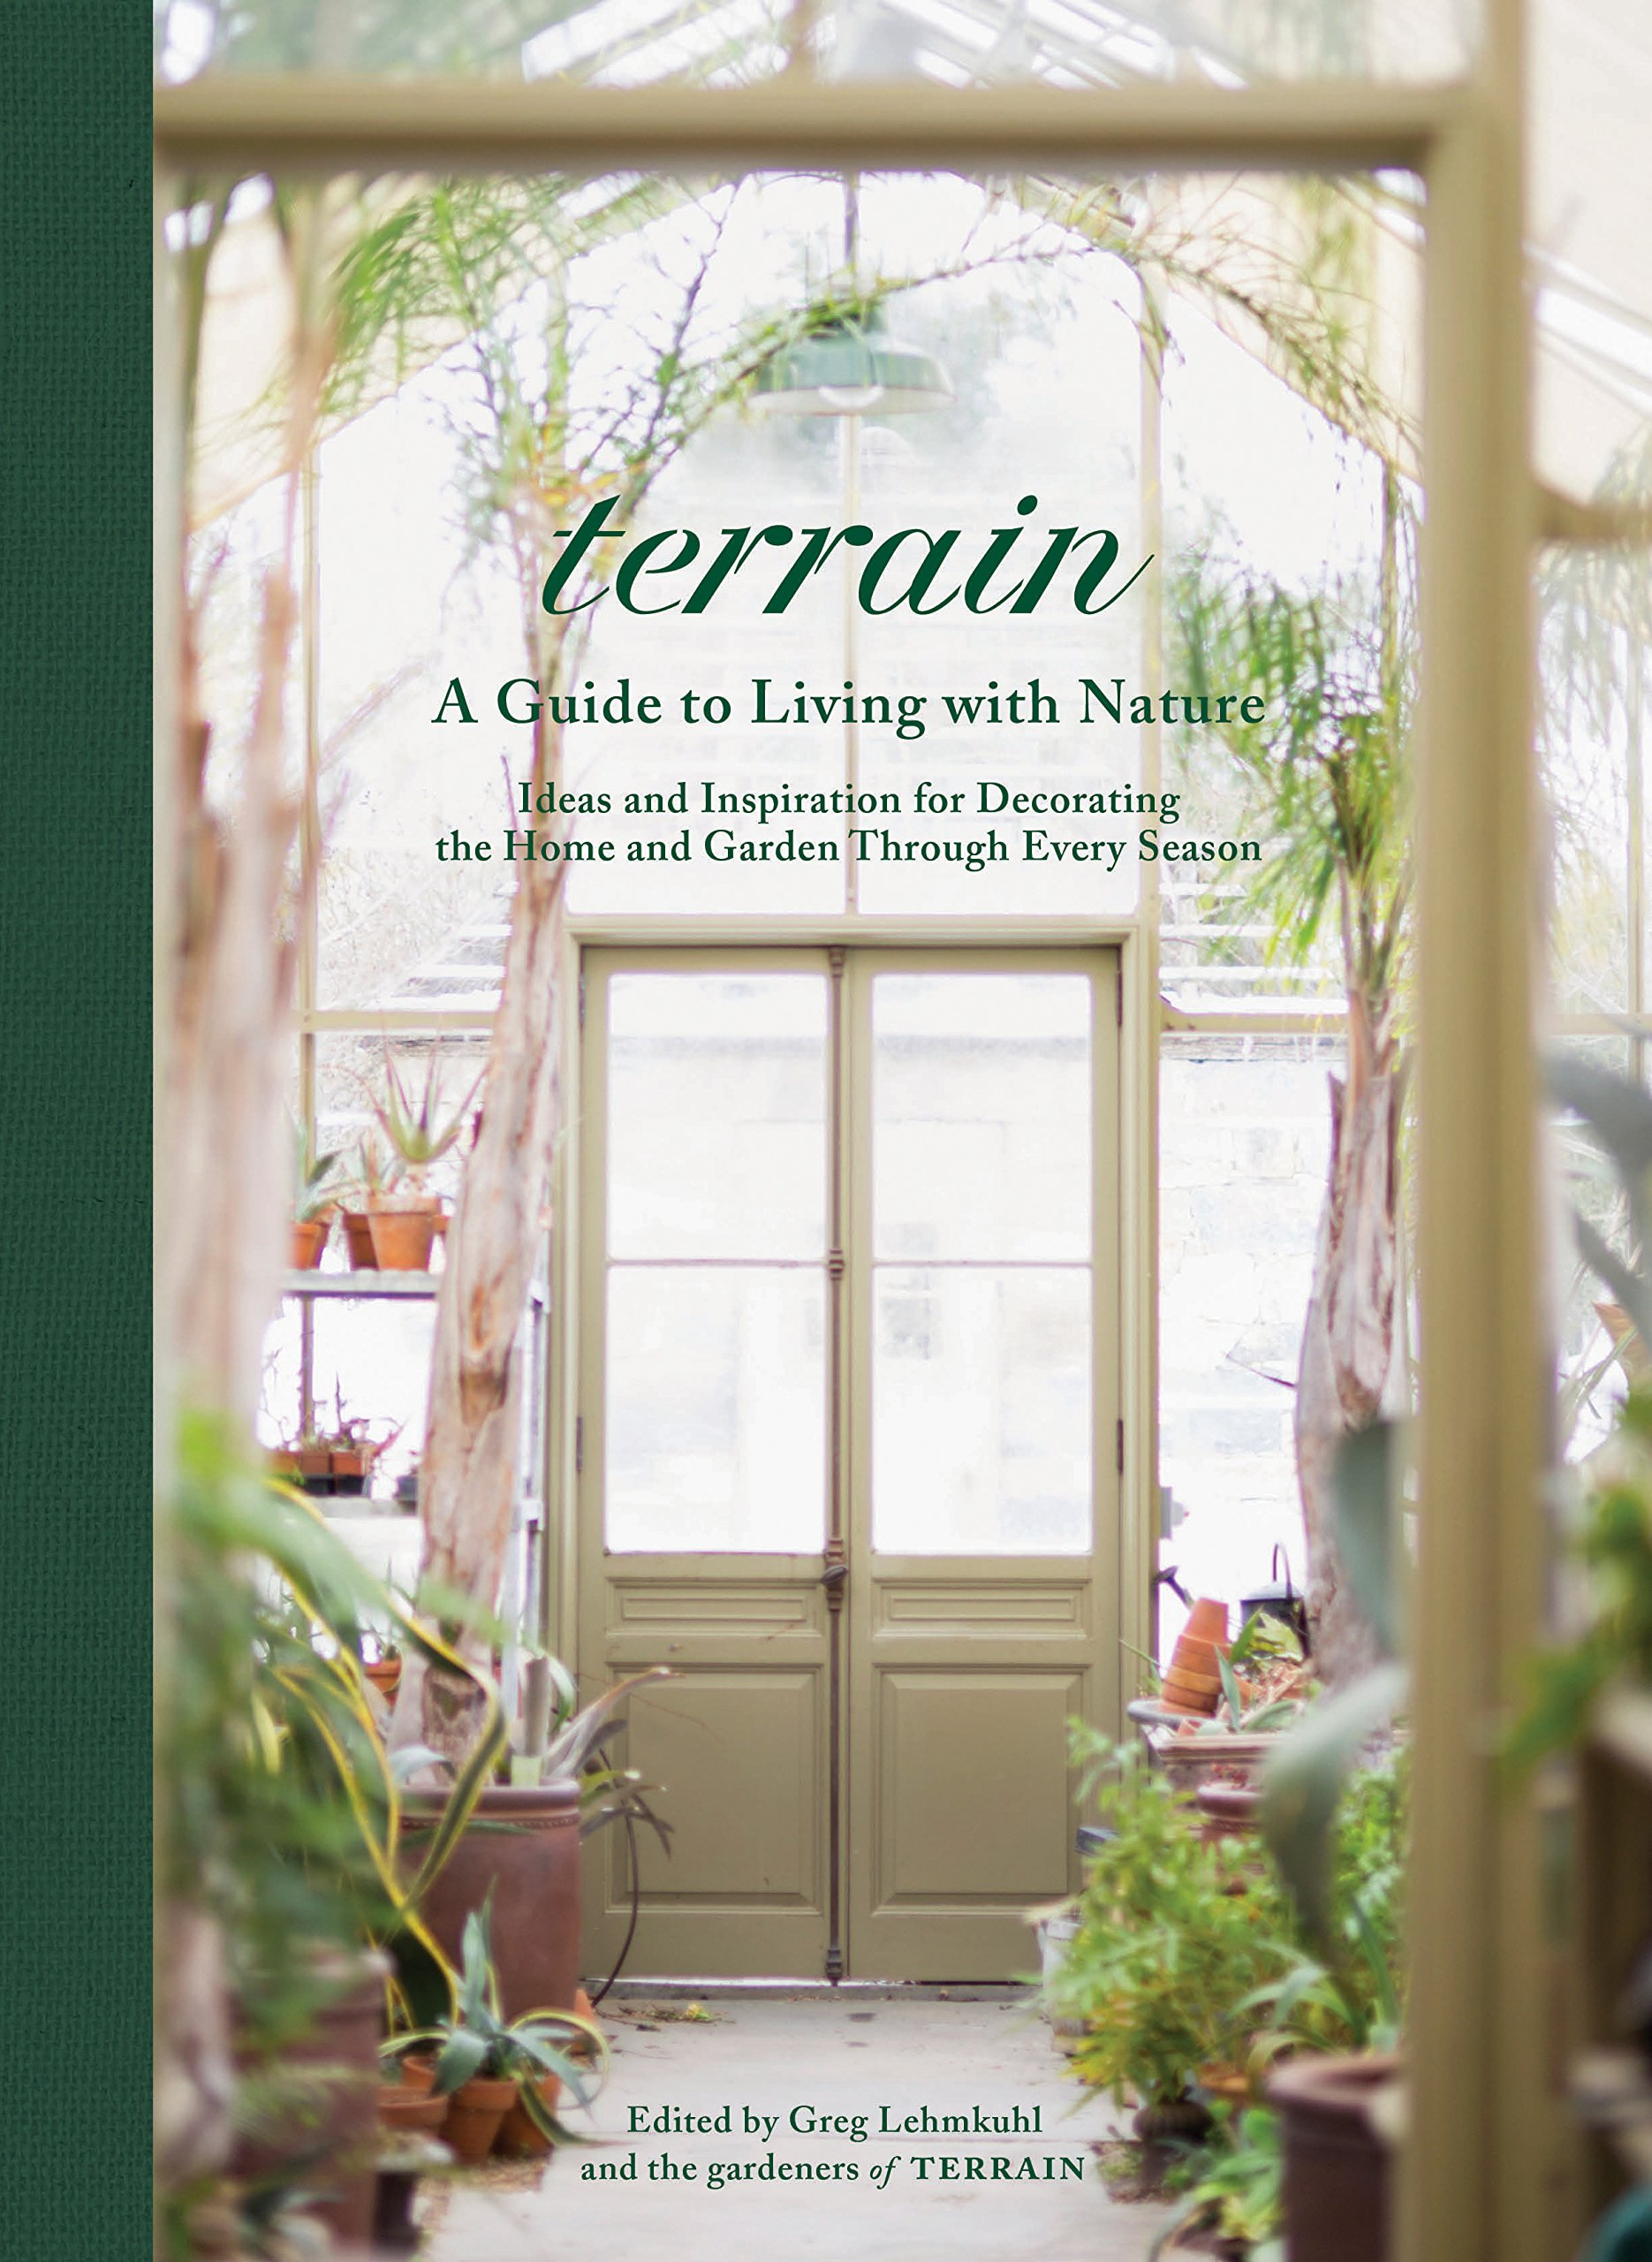 Amazon.com: Terrain: A Guide to Living with Nature (9781579658076 ...